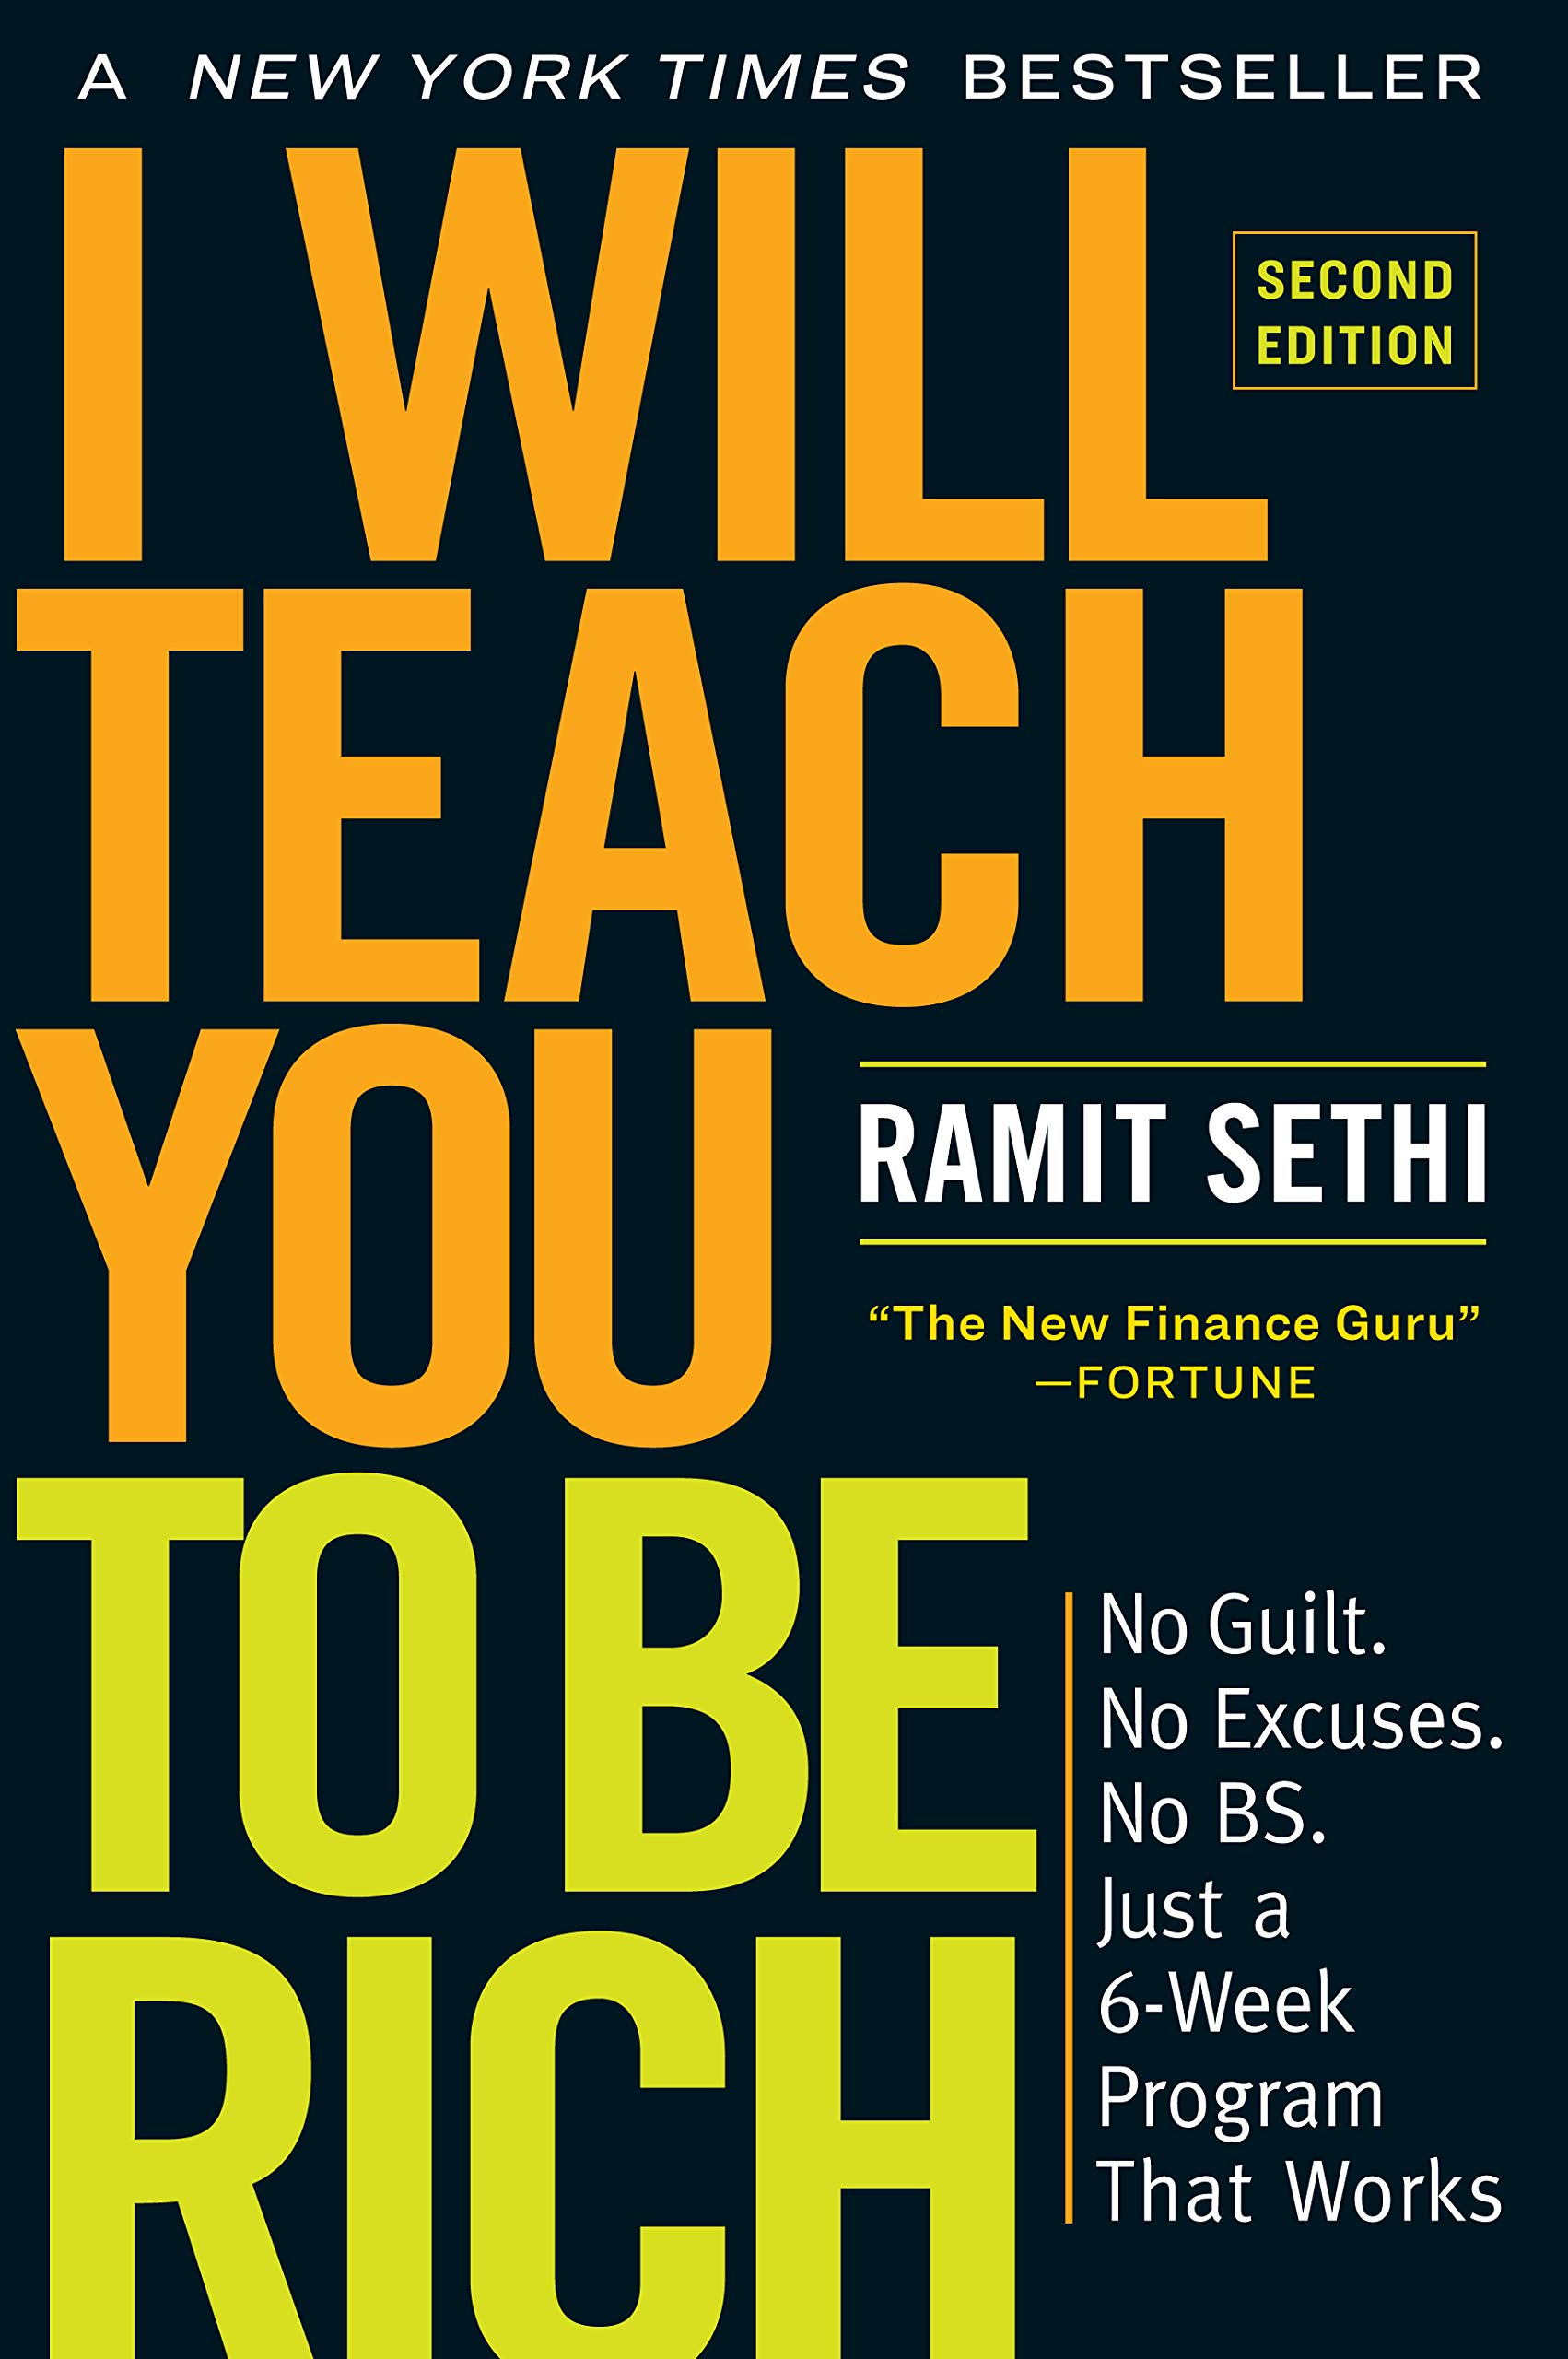 I Will Teach You To Be Rich: No guilt, no excuses – just a 6-week programme that works by Ramit Sethi.